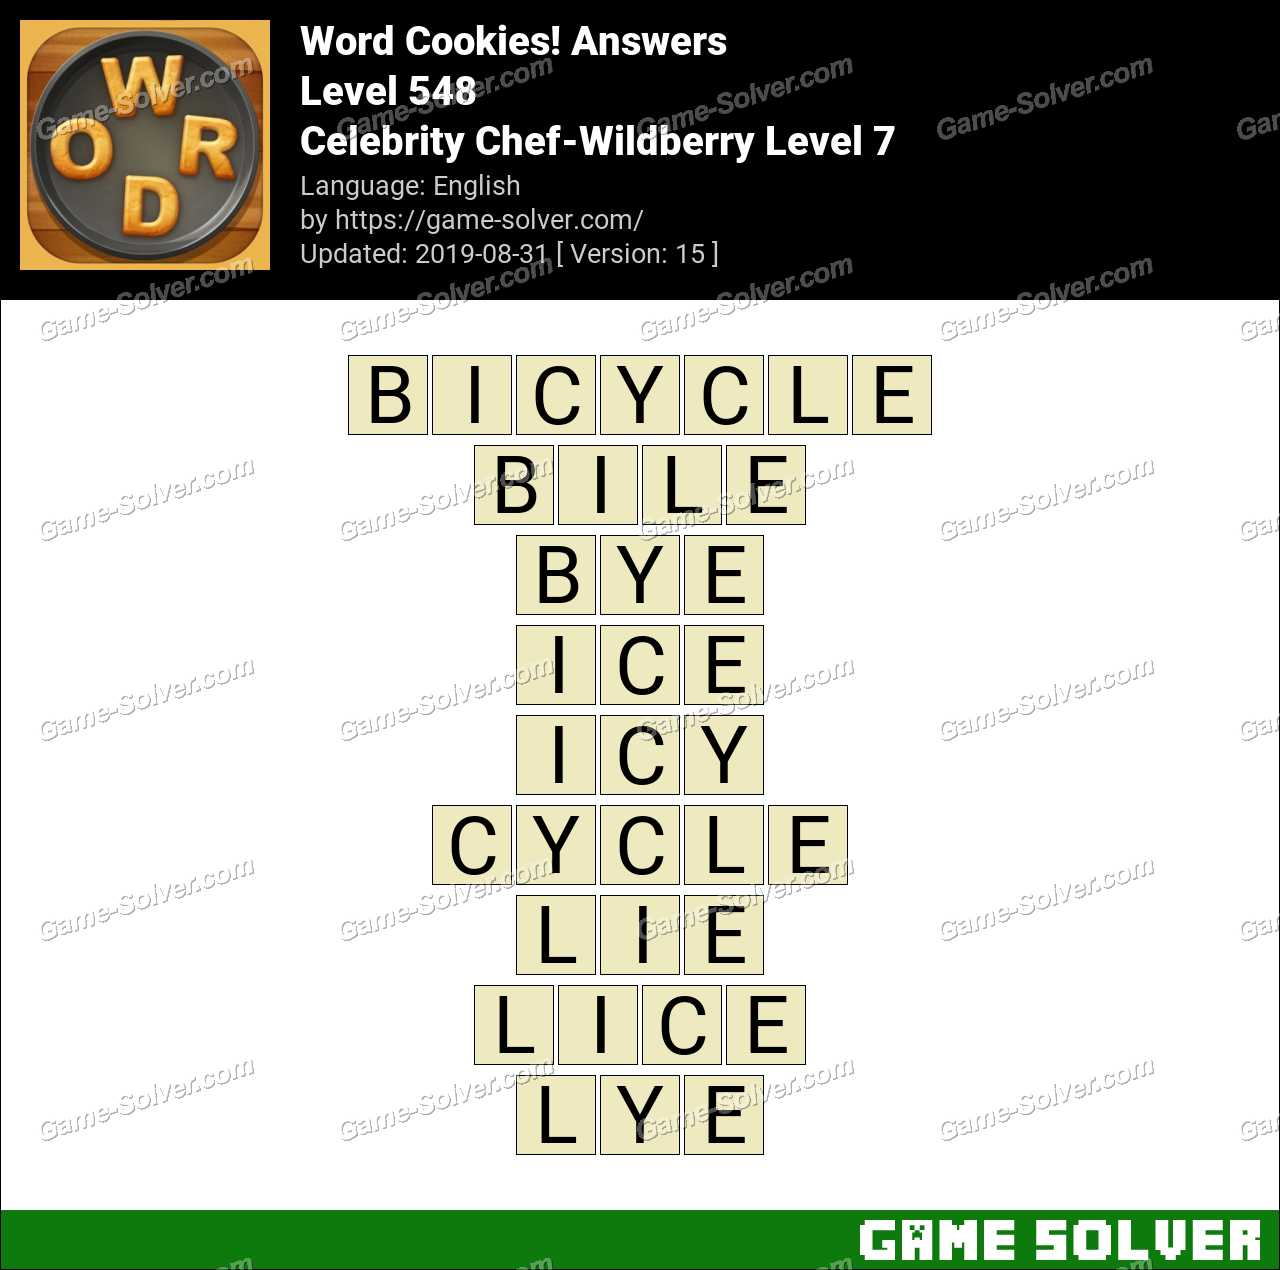 Word Cookies Celebrity Chef-Wildberry Level 7 Answers